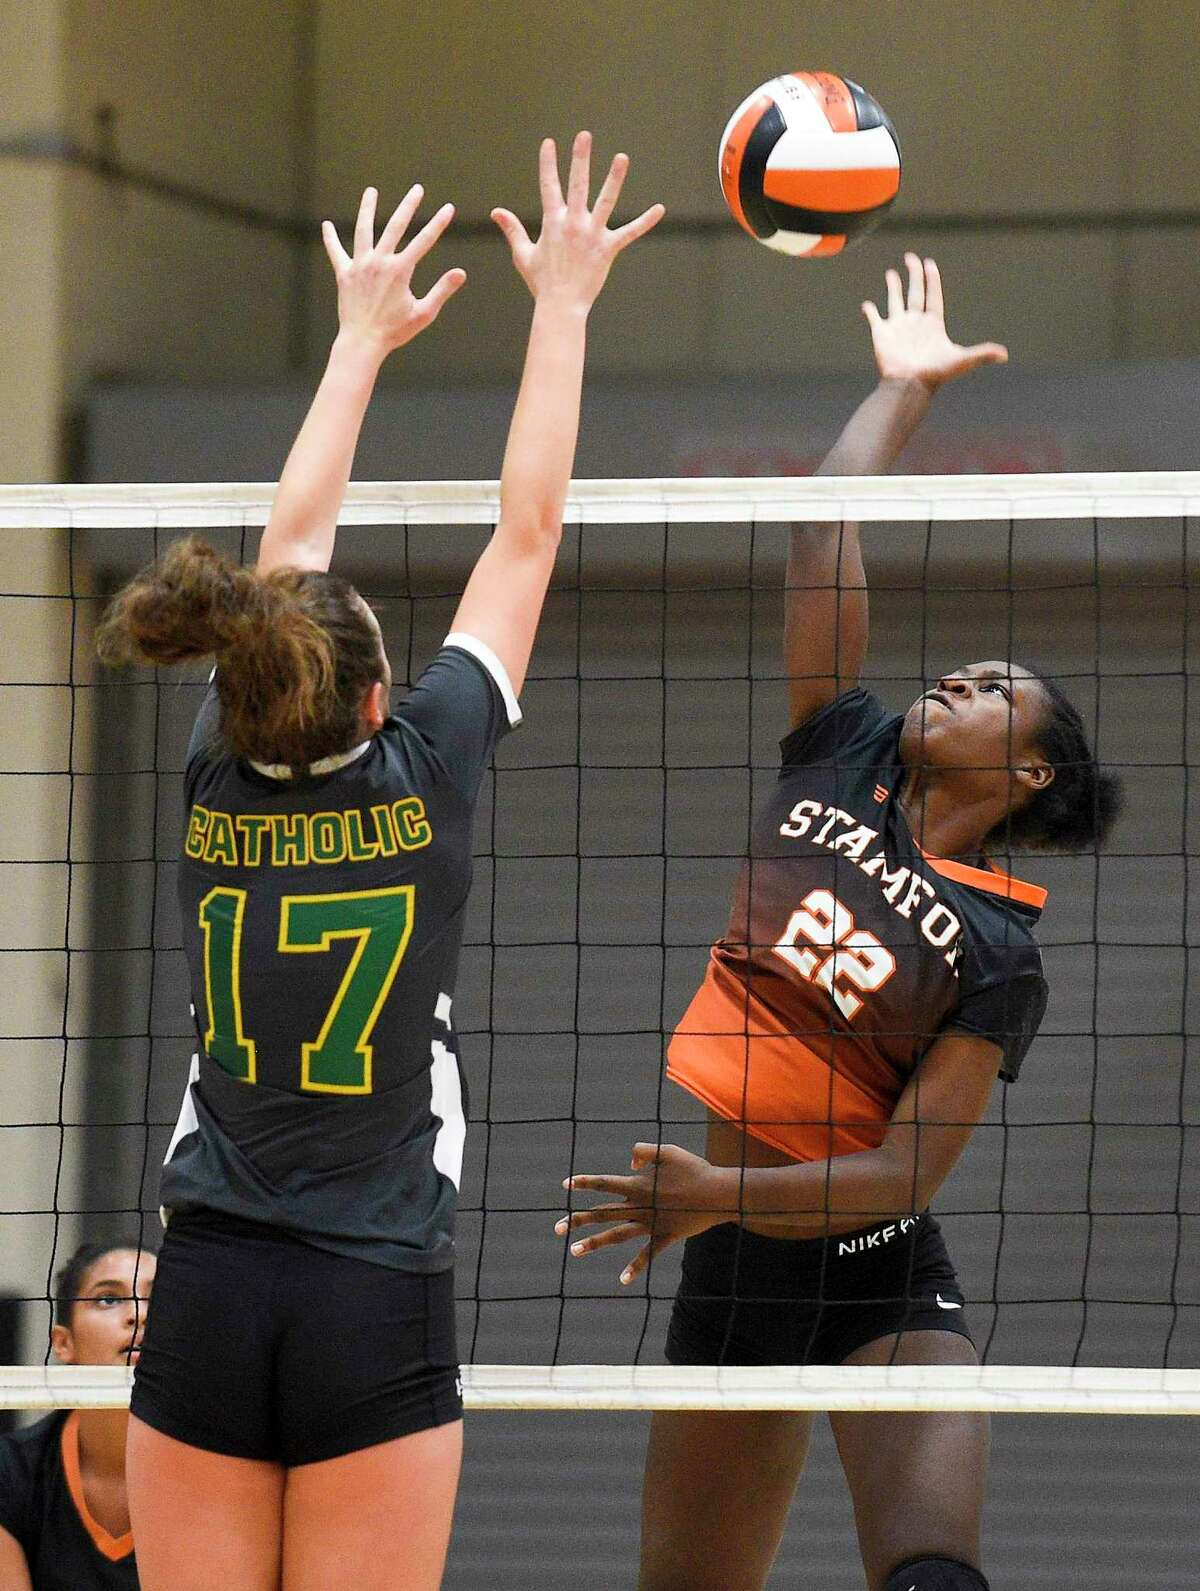 Stamford's Widline Thomas (22) taps the ball past Trinity Catholic's Valeria Barbaglio (17) during a girls volleyball match in Stamford on Oct. 23, 2019. Stamford went on to sweep Trinity Catholic in three sets 25-19, 30-28, 25-8.